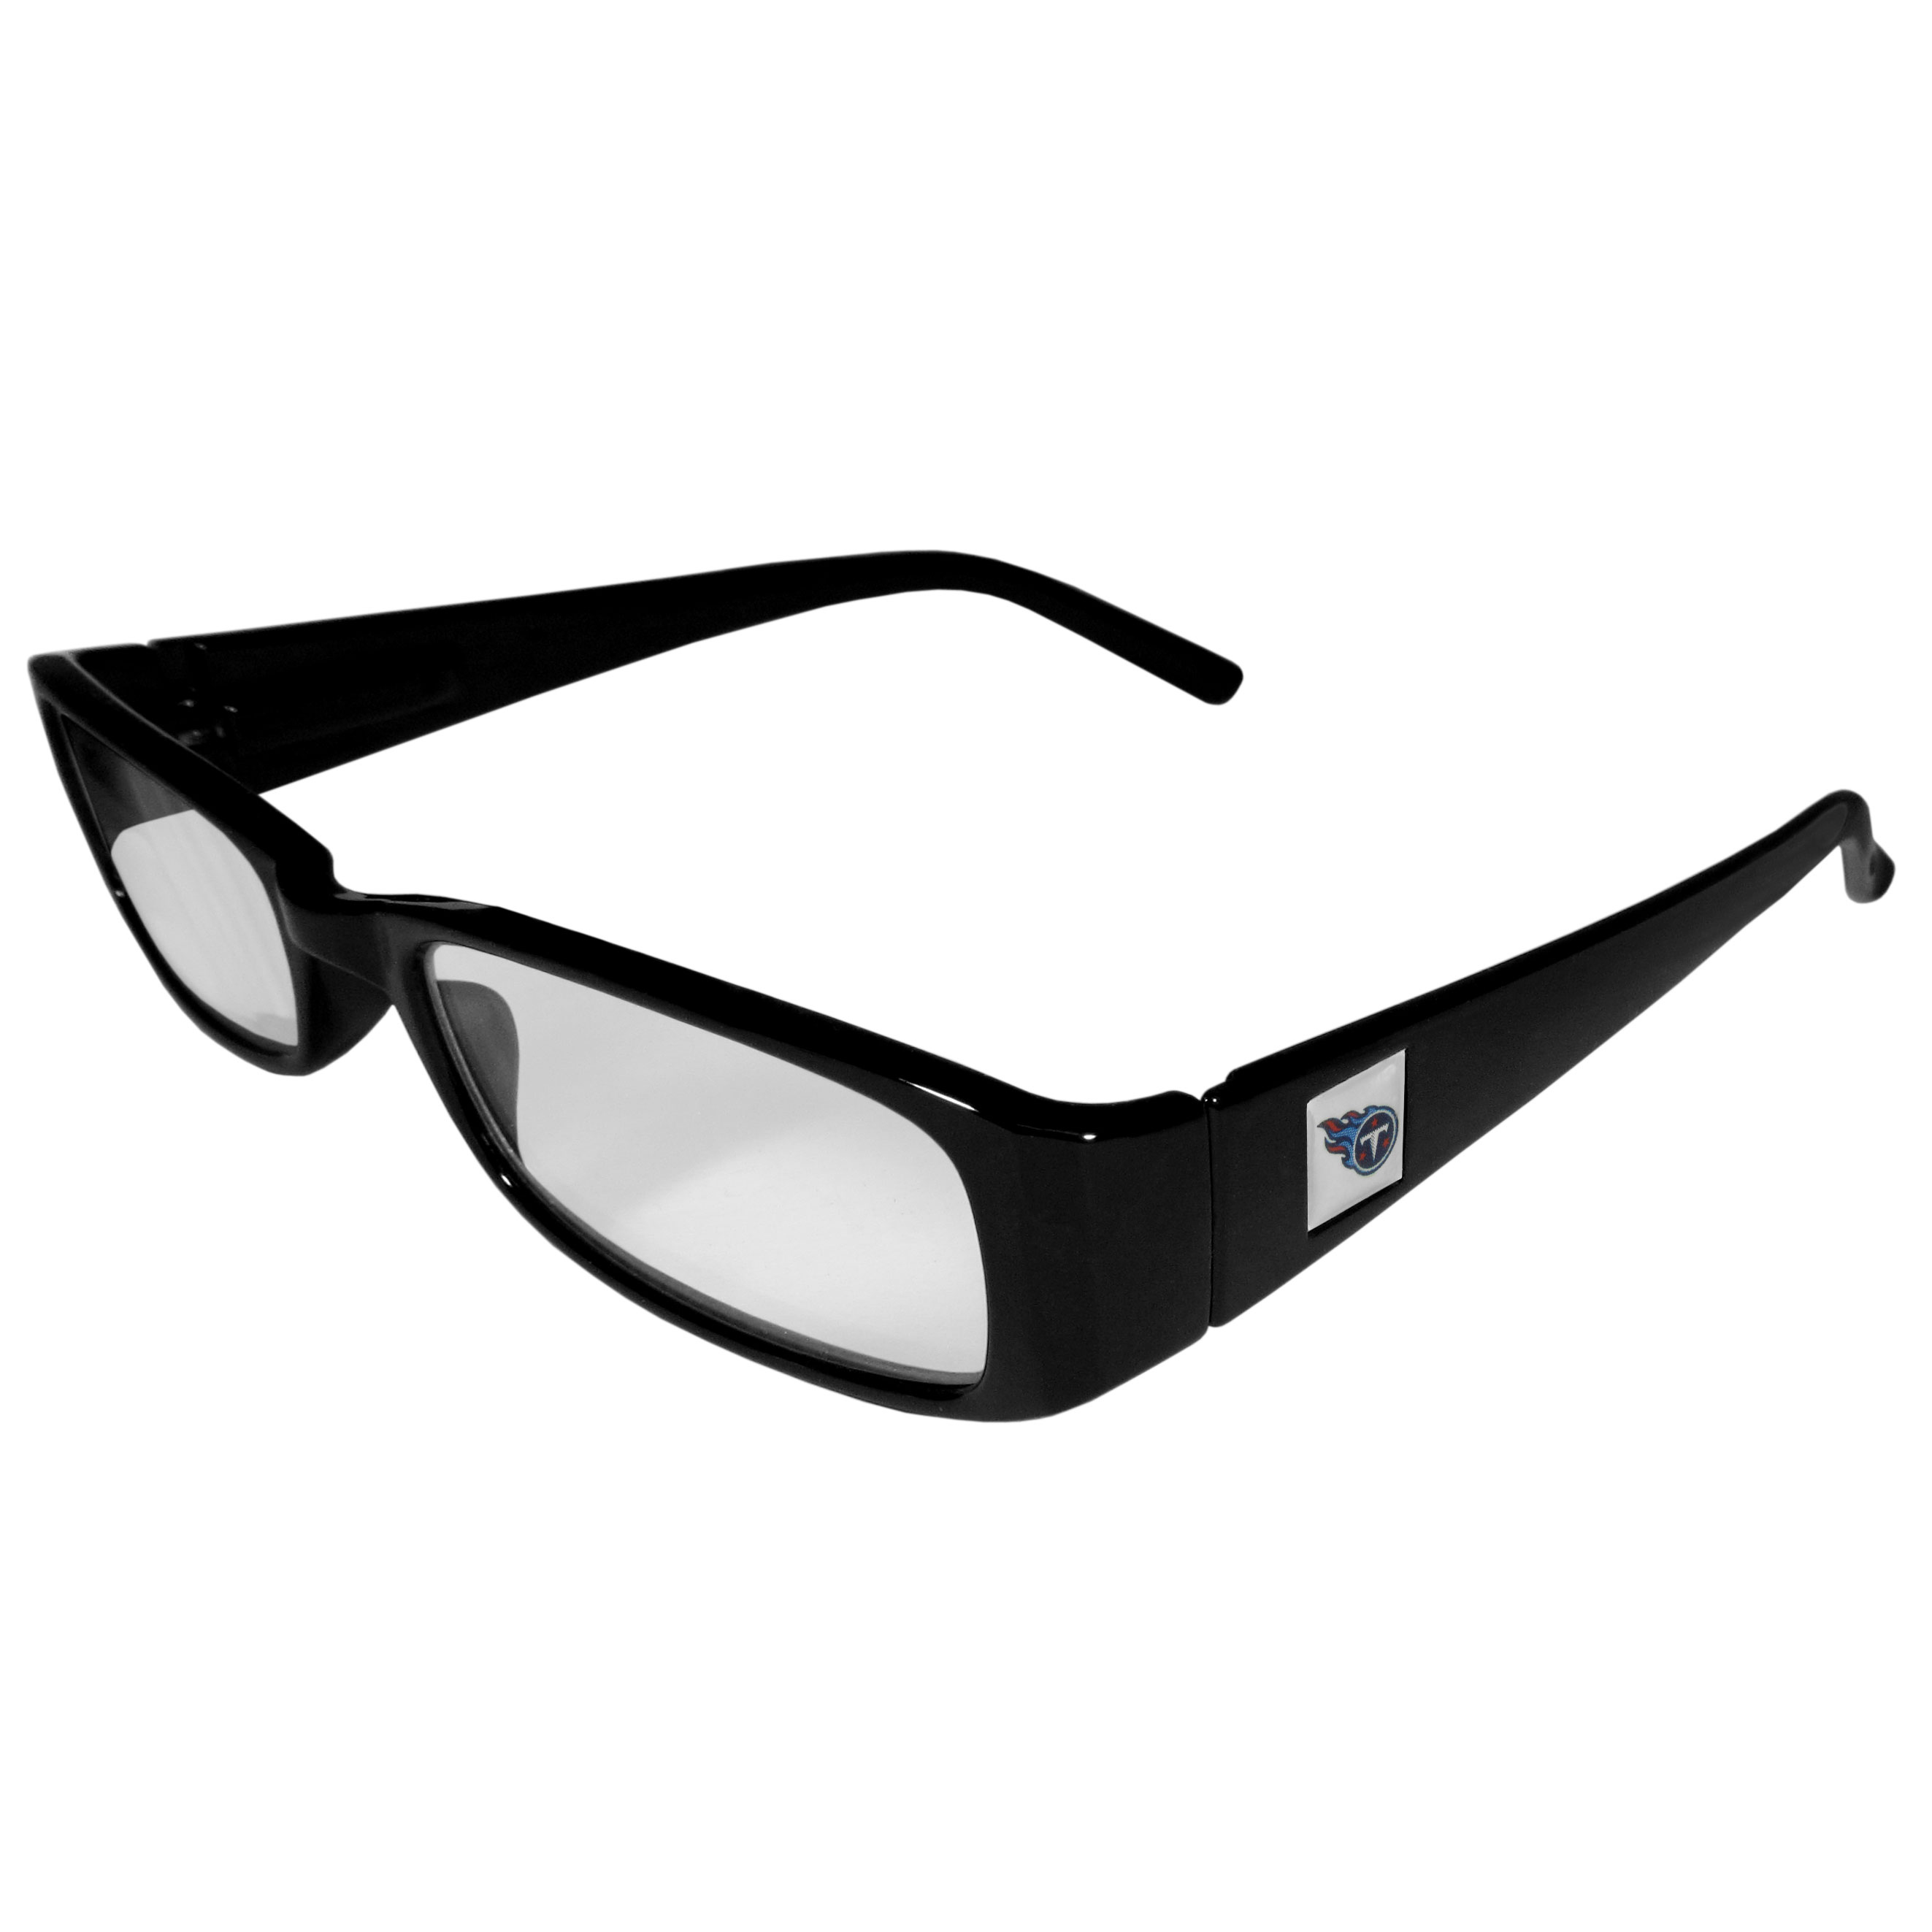 Tennessee Titans Black Reading Glasses +1.25 - Our Tennessee Titans reading glasses are 5.25 inches wide and feature the team logo on each arm. Magnification Power 1.25